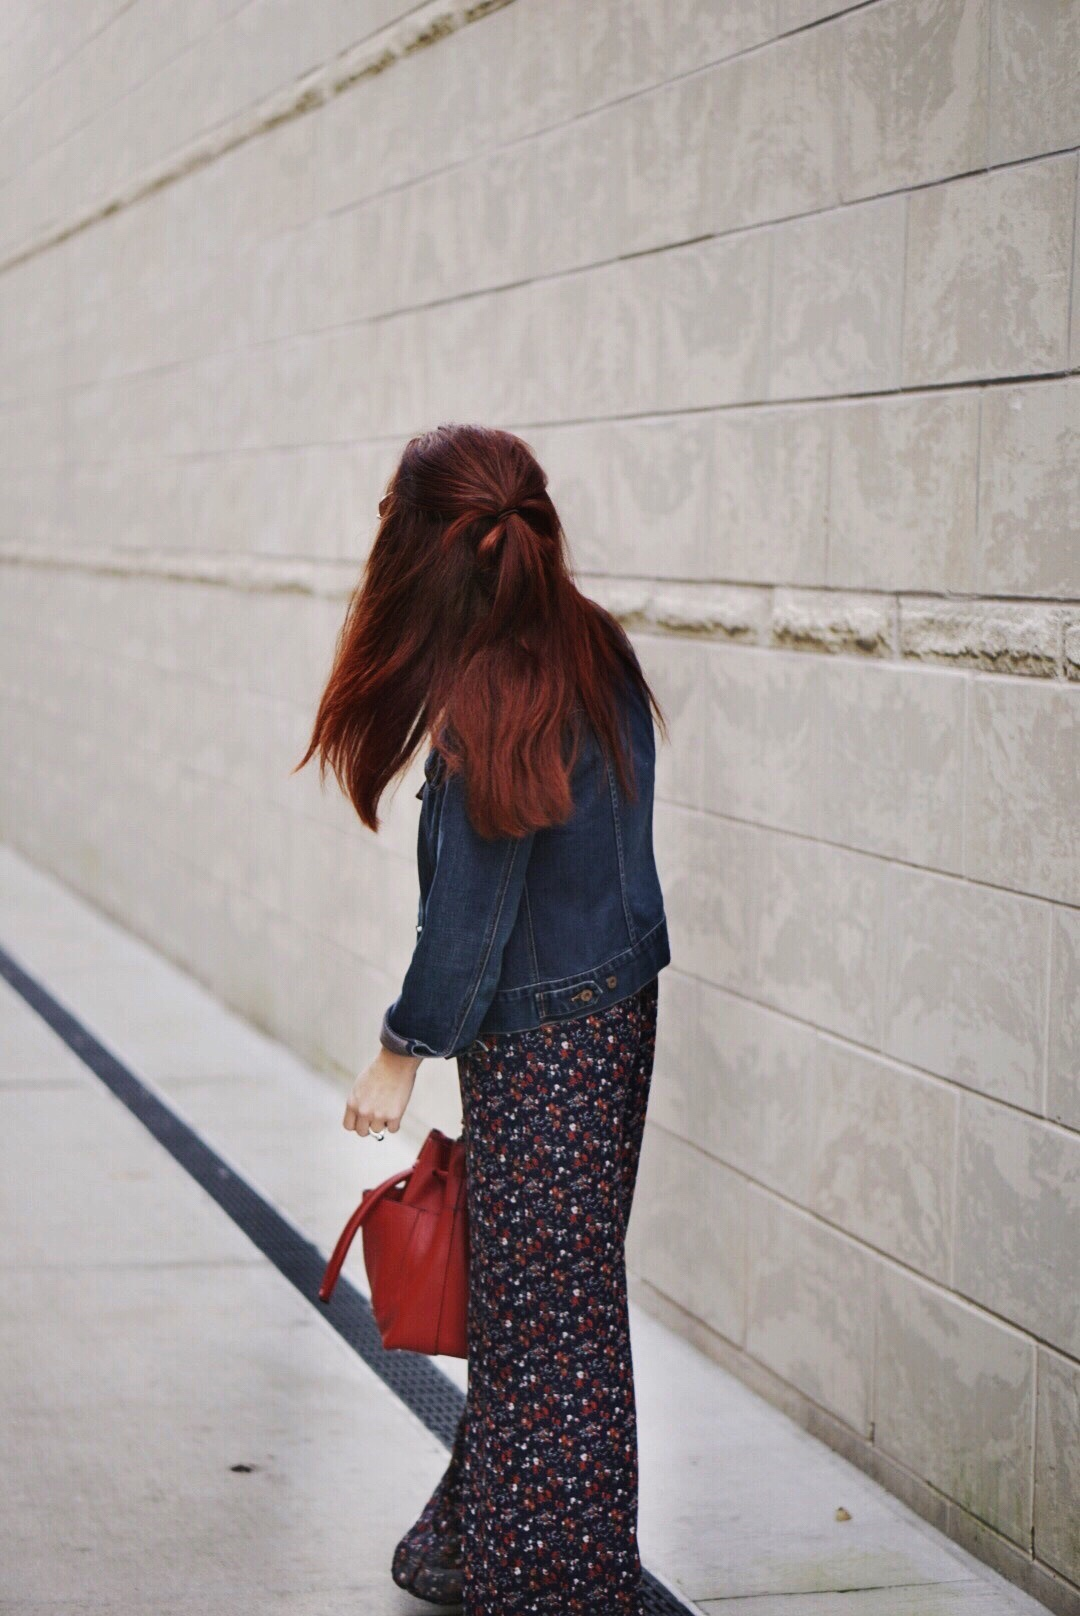 flaral pants, jean jacket, jumpsuit outfits, tips on cutting back in life, red bag